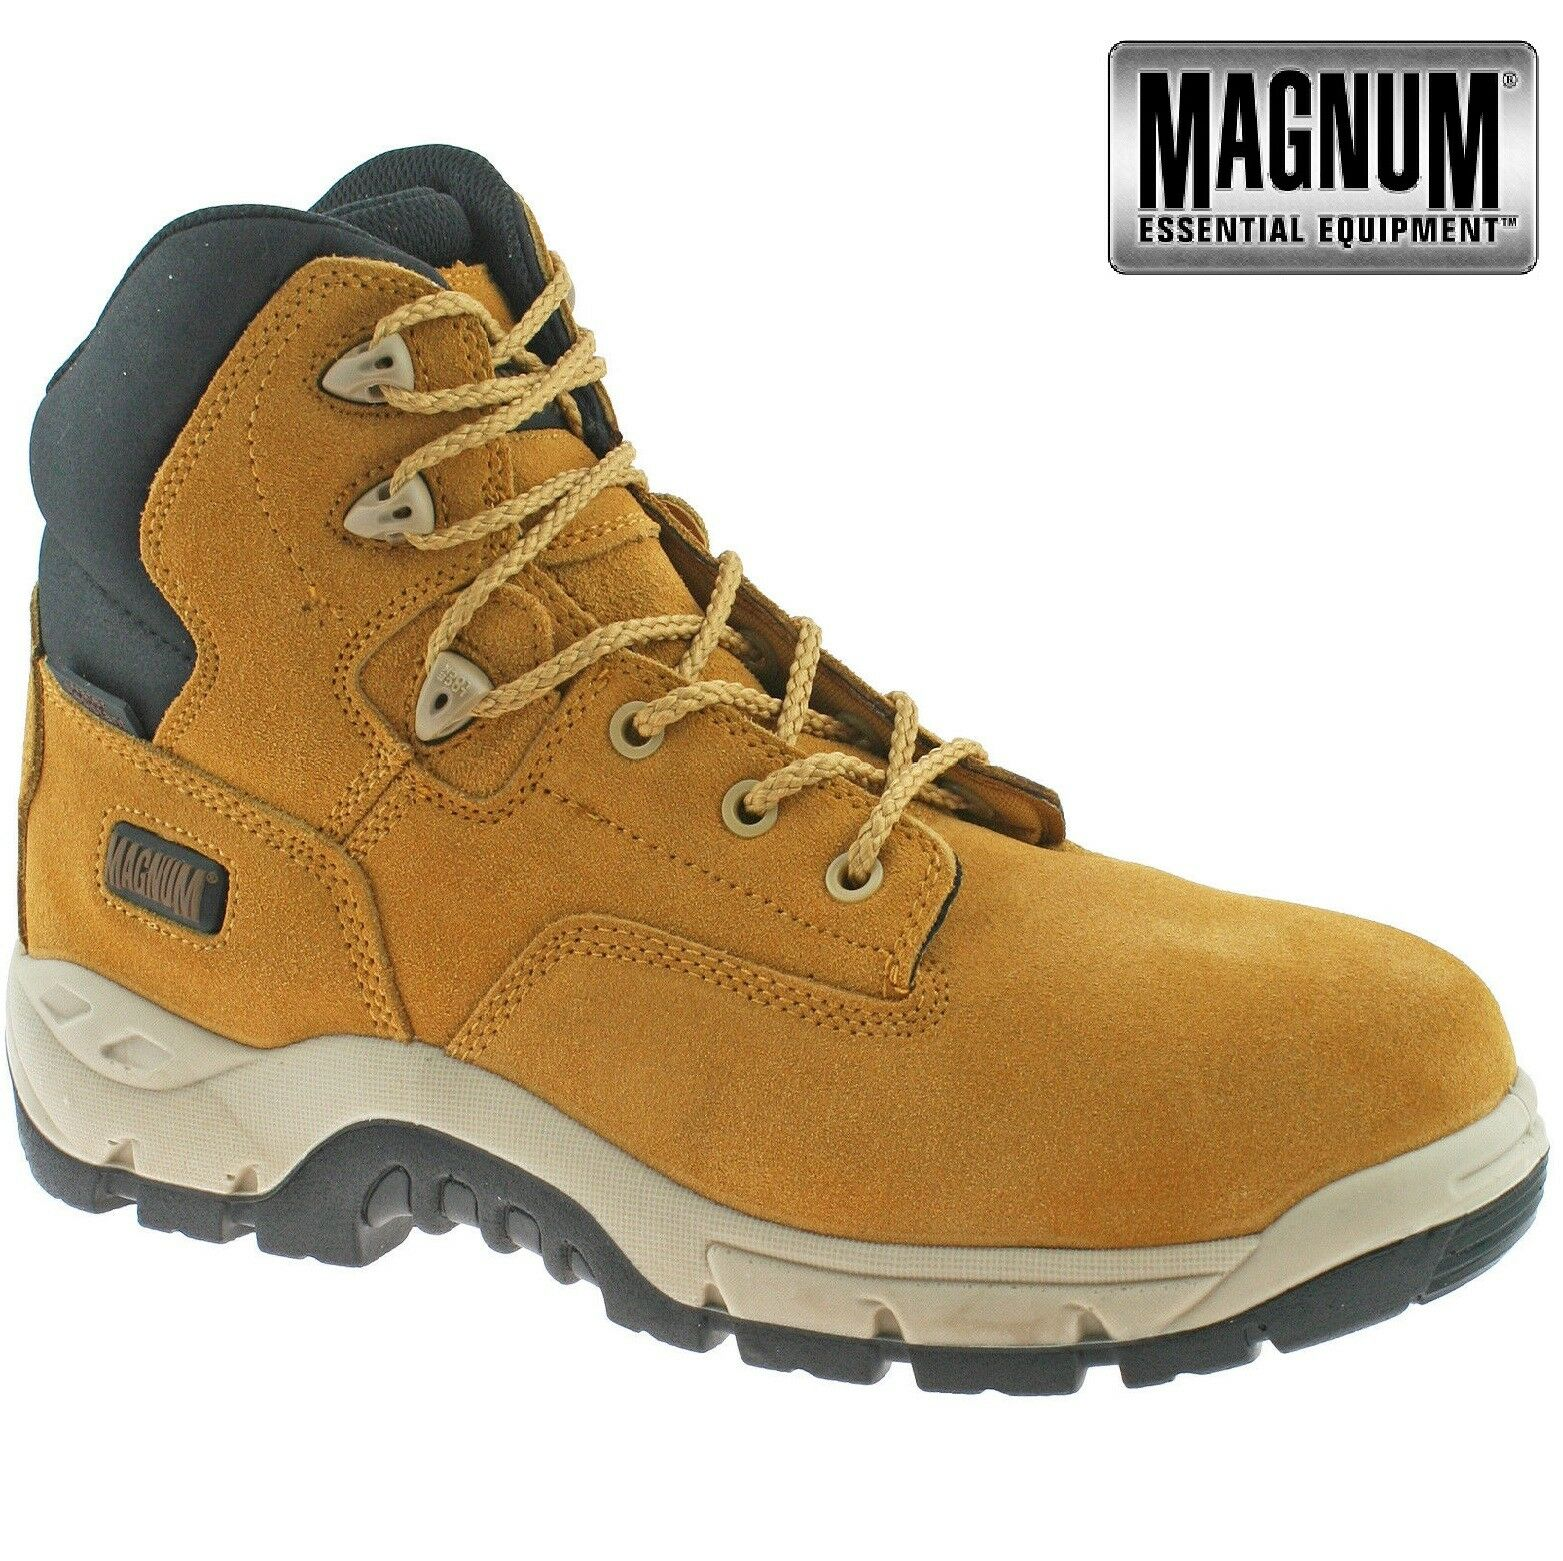 MENS MAGNUM SITEMASTER LEATHER WATERPROOF COMPOSITE SAFETY TOE CAP WORK WORK WORK Stiefel SZ e4fee9